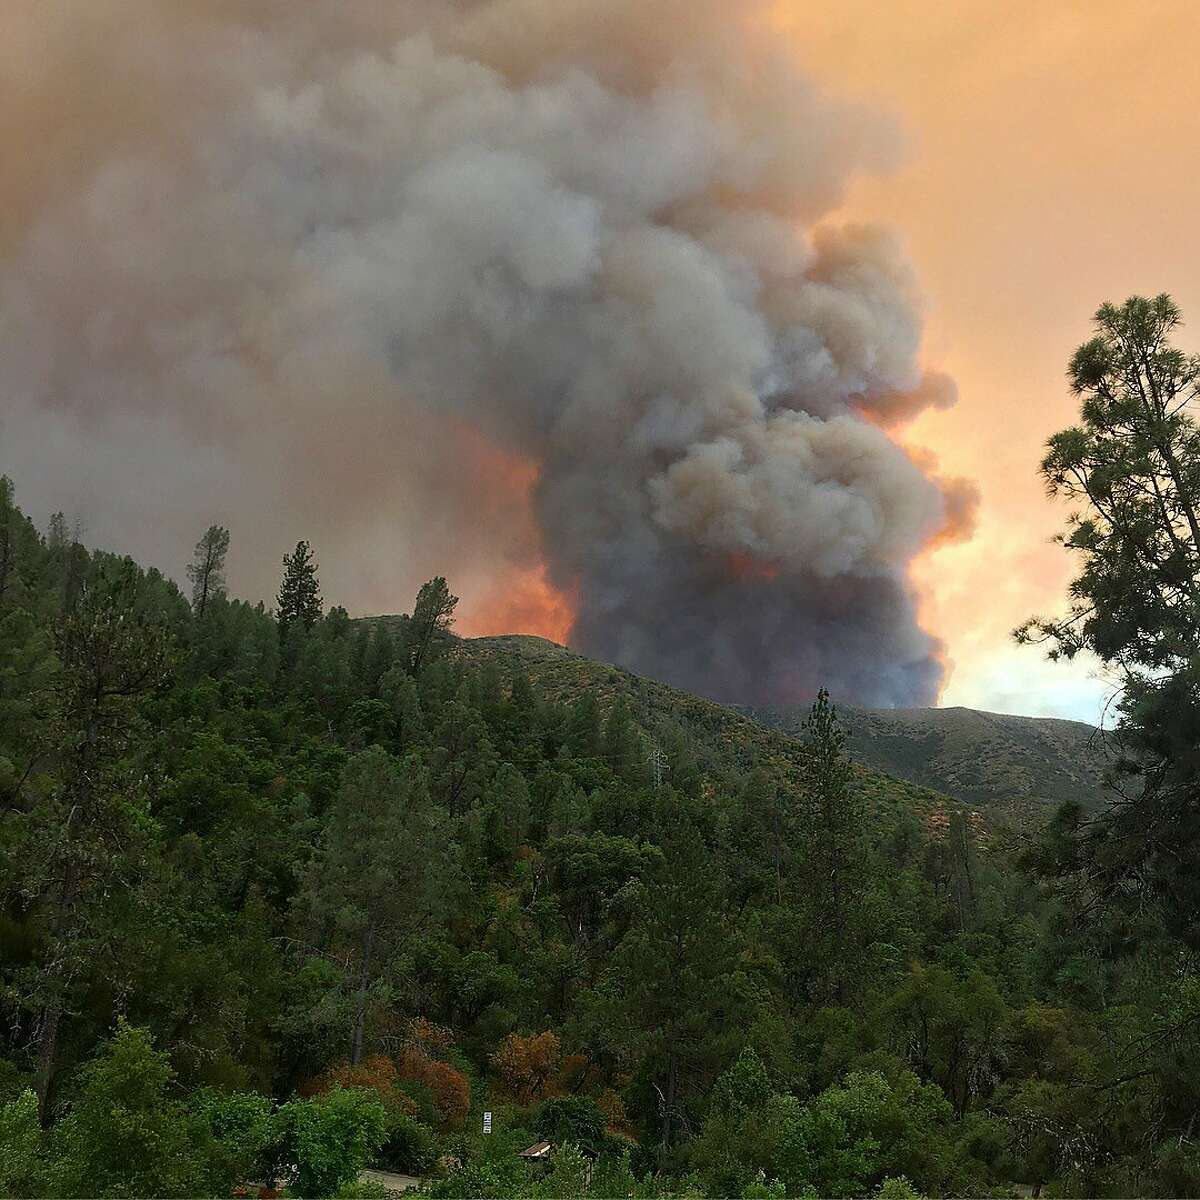 The Ferguson Fire burns near Yosemite National Park on Sunday, July 15, 2018, as seen from El Portal, Calif. (Carrie Anderson via AP)